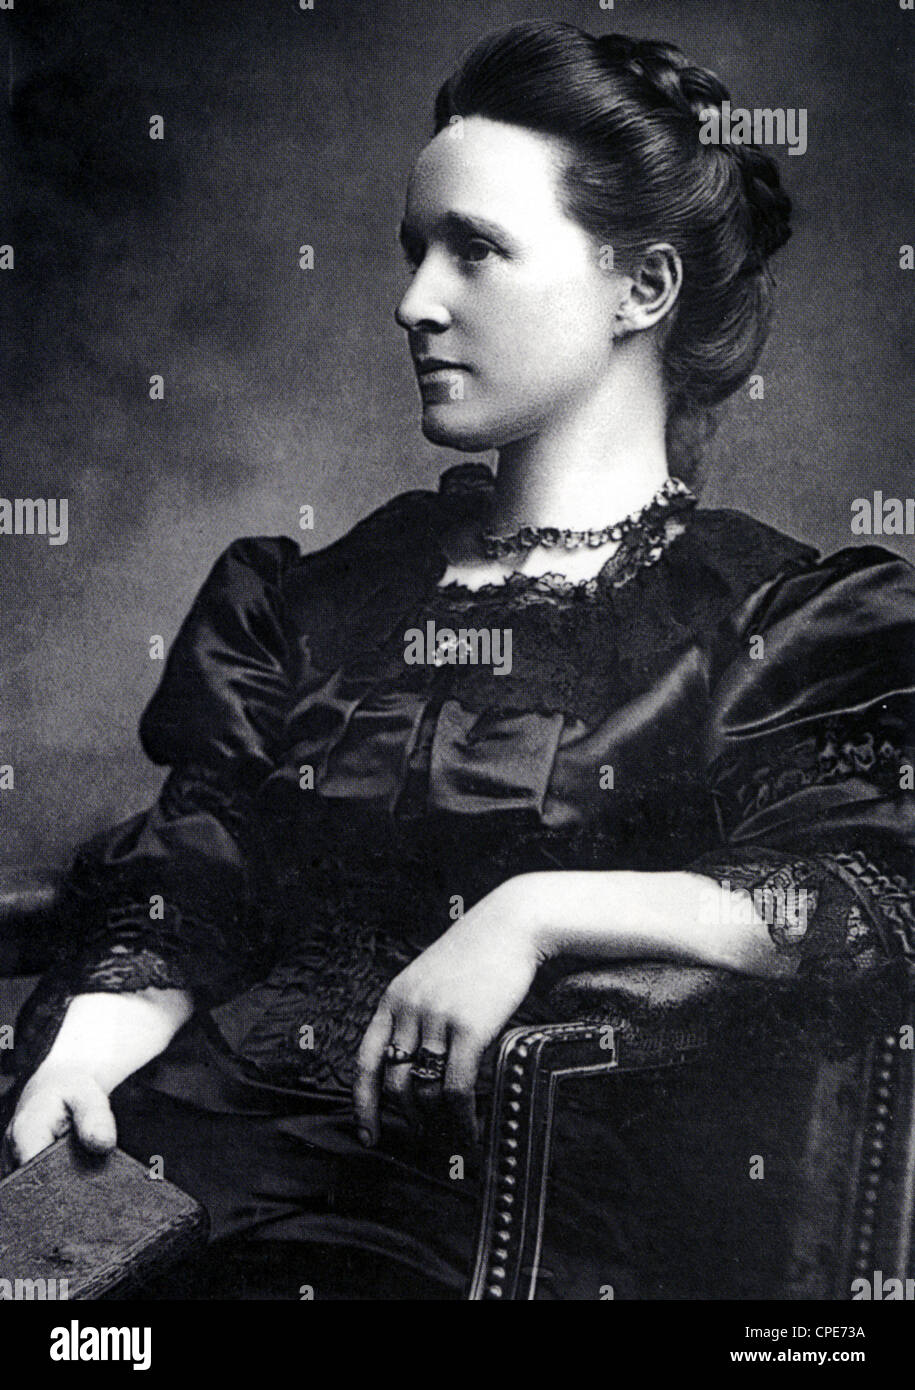 MILLICENT FAWCETT (1847-1929) English suffragist and feminist - Stock Image